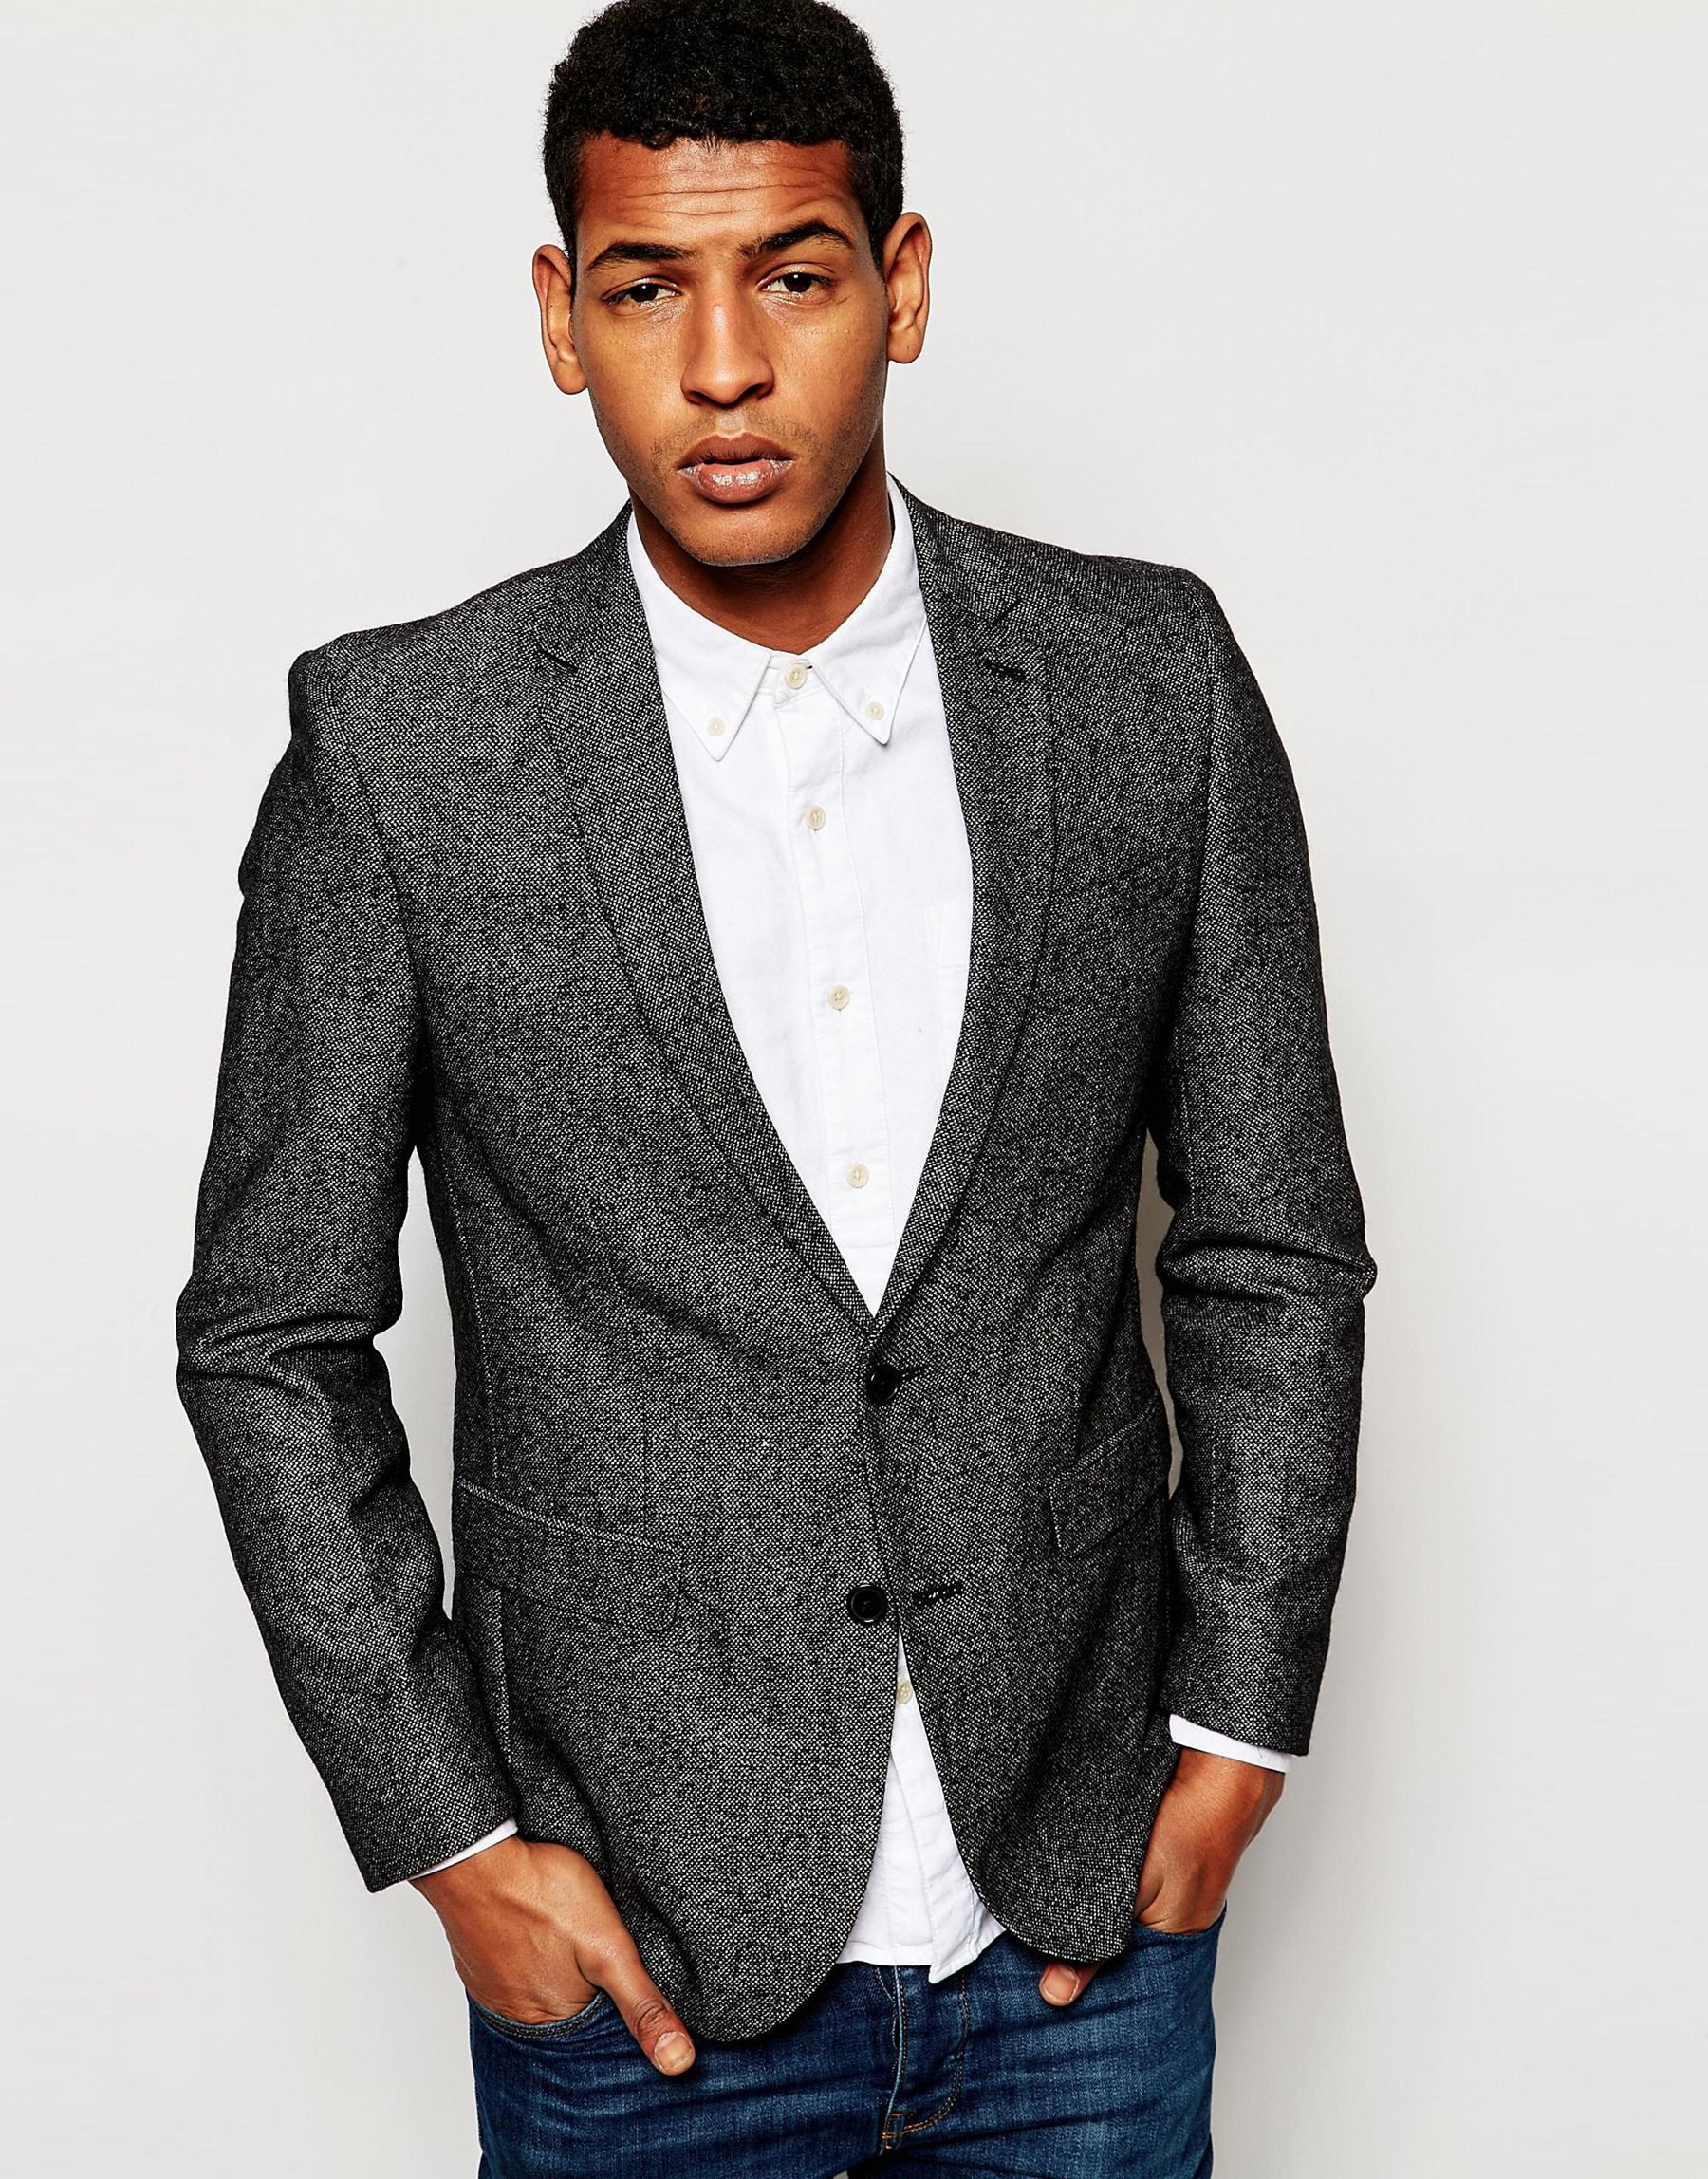 A modern re-invention of a timeless classic, our men's tweed suits are the pinnacle of smart dressing. Cut to a skinny fit but broader across the chest and shoulders, the trousers are skinny with a long leg to give the suit a classic tailored look.